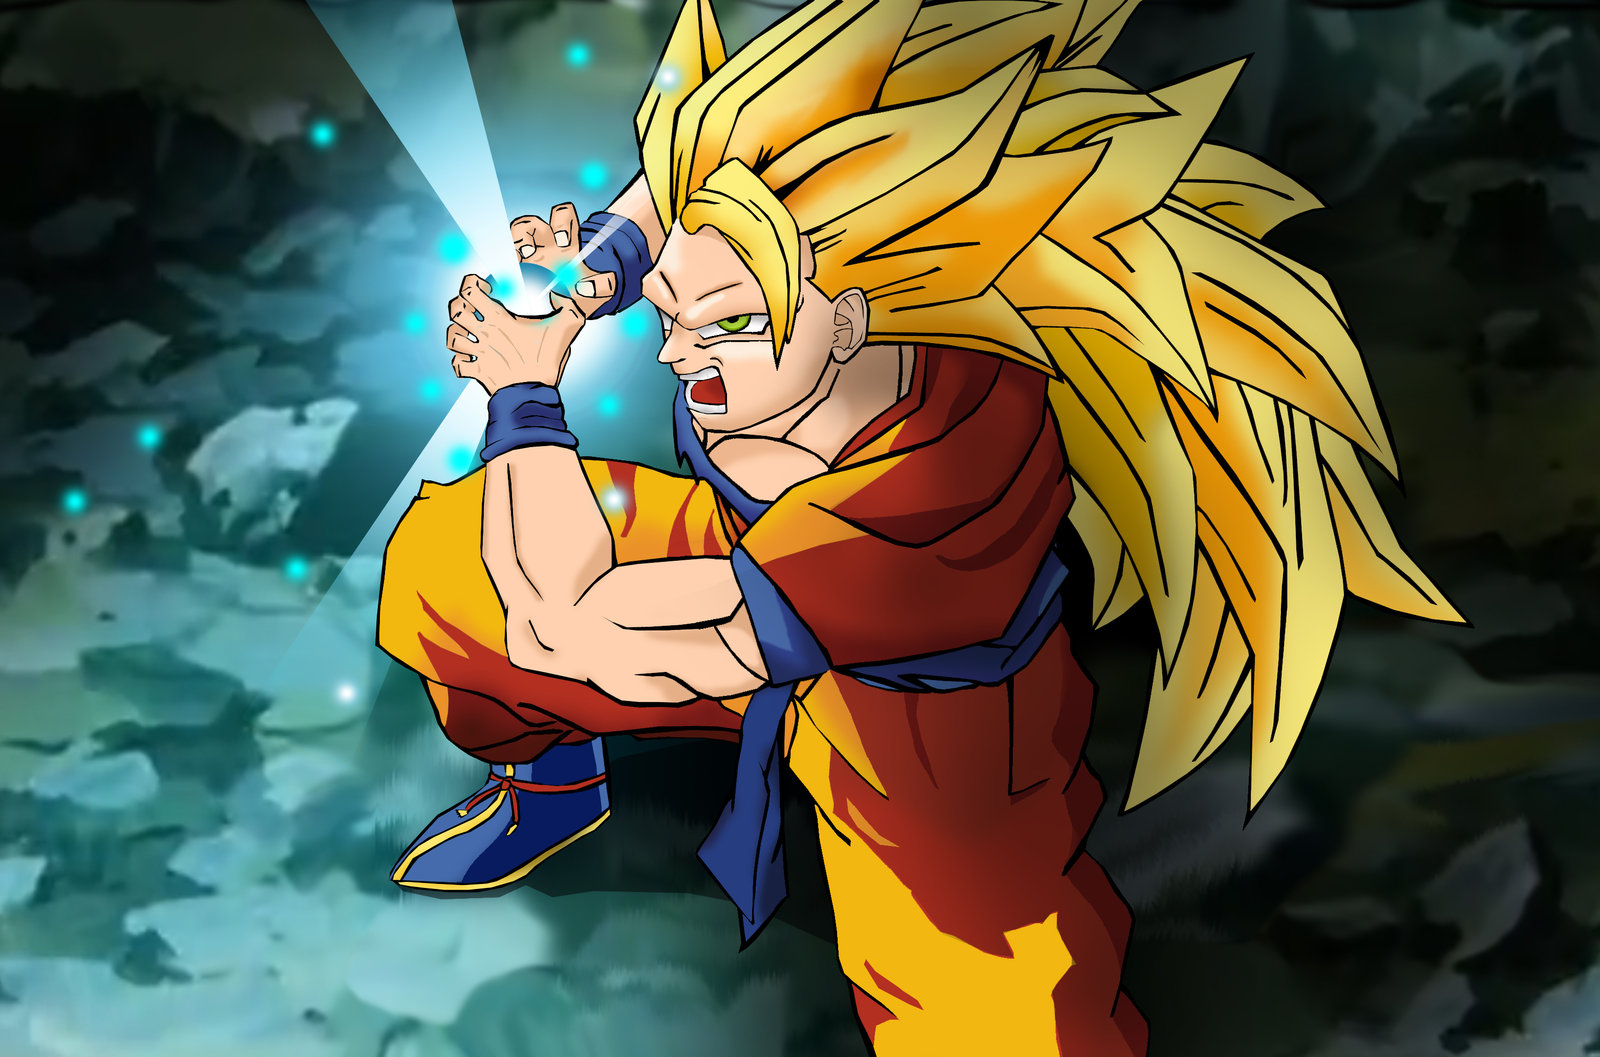 Full resolution      1 600   215  1 057 pixels  file size  297 KB  MIME    Goku Super Saiyan 4 Kamehameha X10